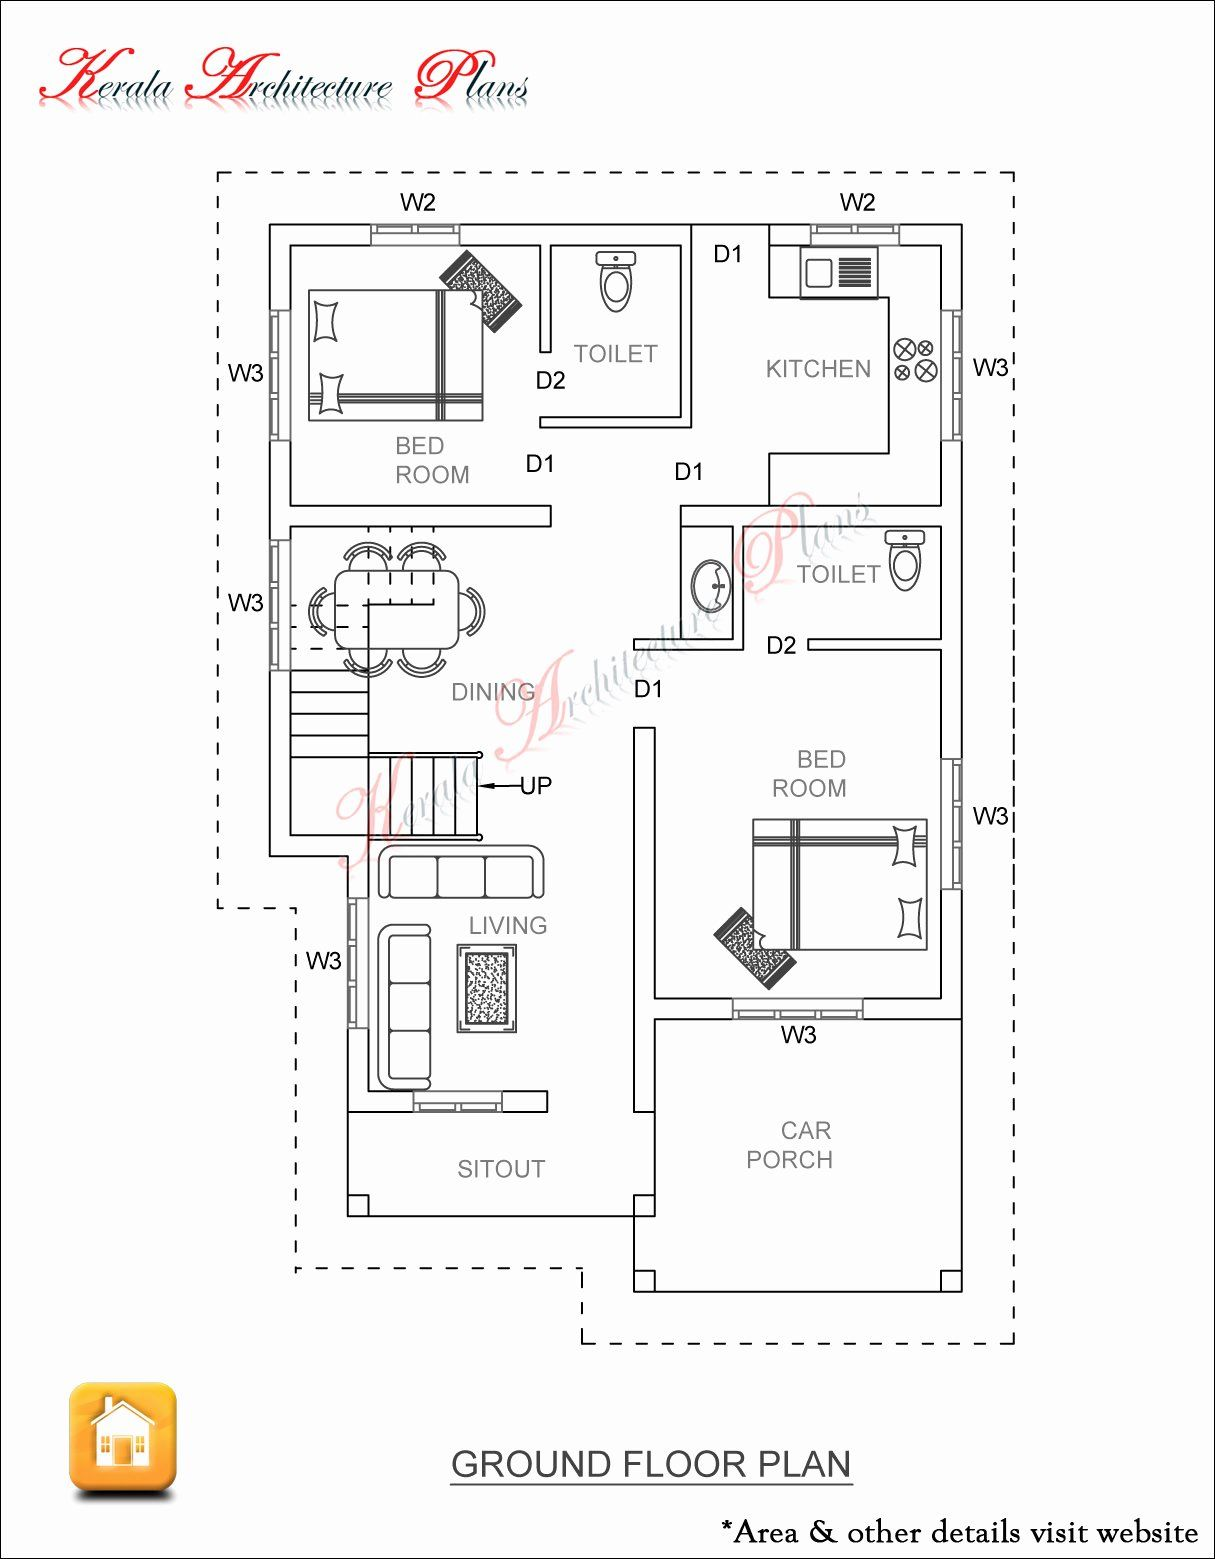 1400 Sq Ft House Plans Inspirational 3 Bed Room 1500 Square Feet House Plan In 2020 Small House Plans 1500 Sq Ft House Shop House Plans